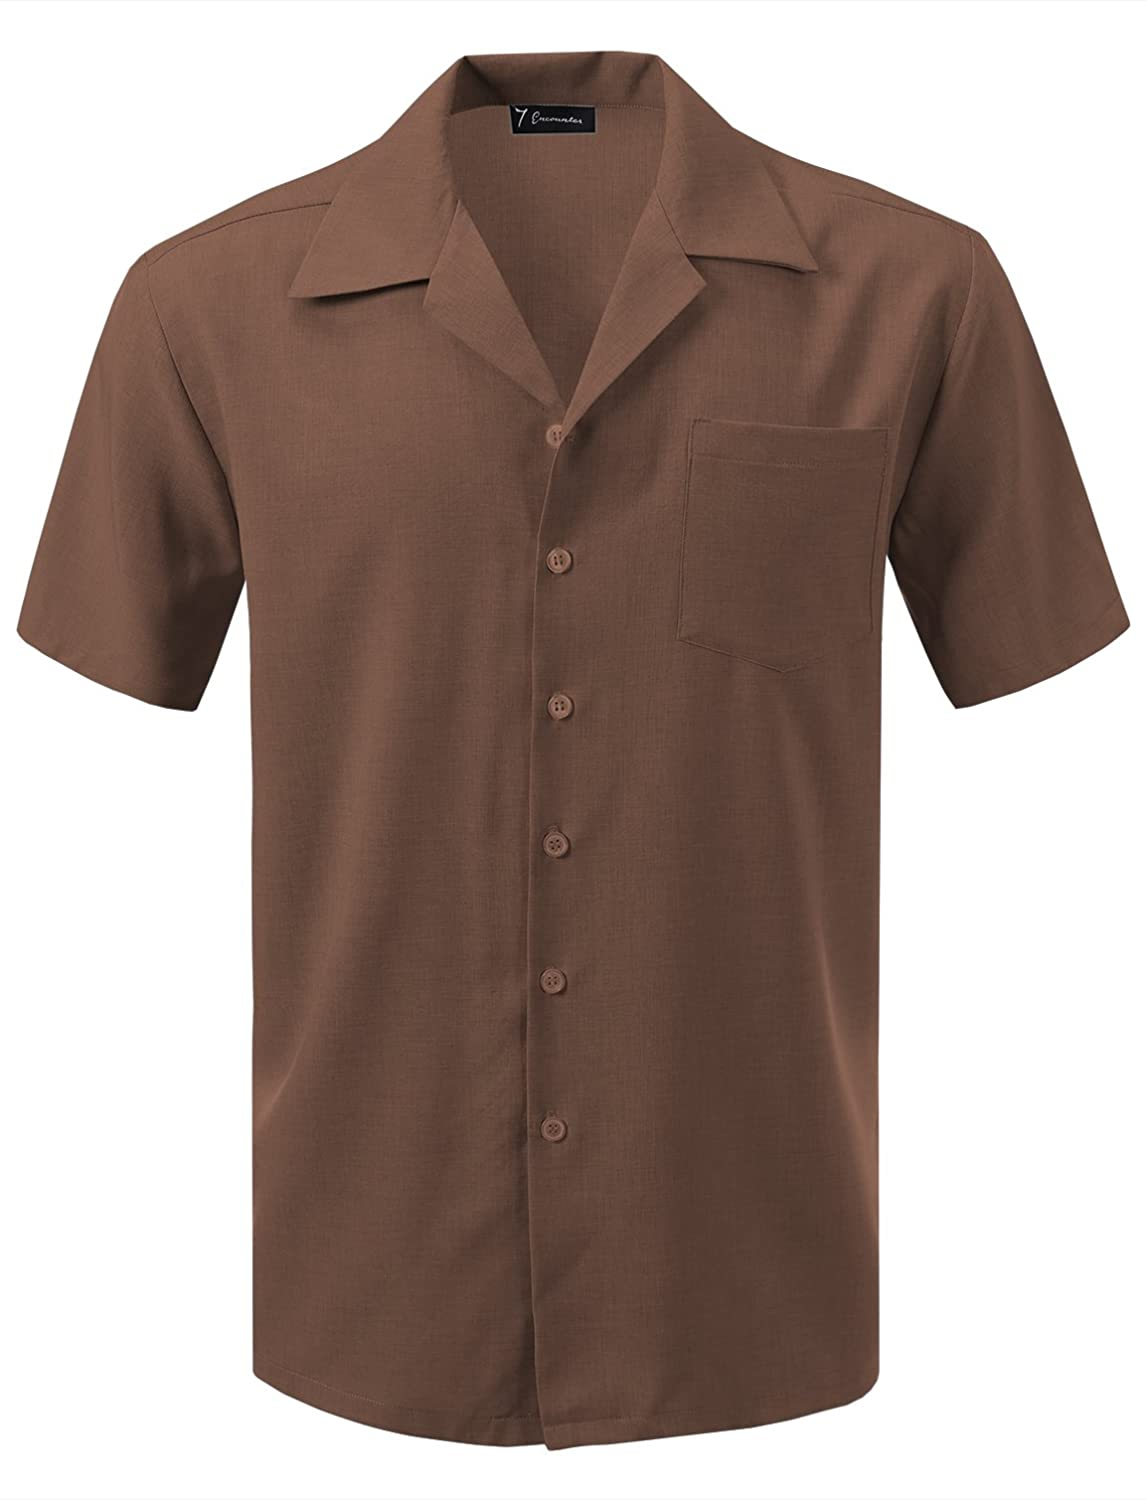 1950s Men's Clothing 7 Encounter Mens Camp Dress Shirt $29.99 AT vintagedancer.com